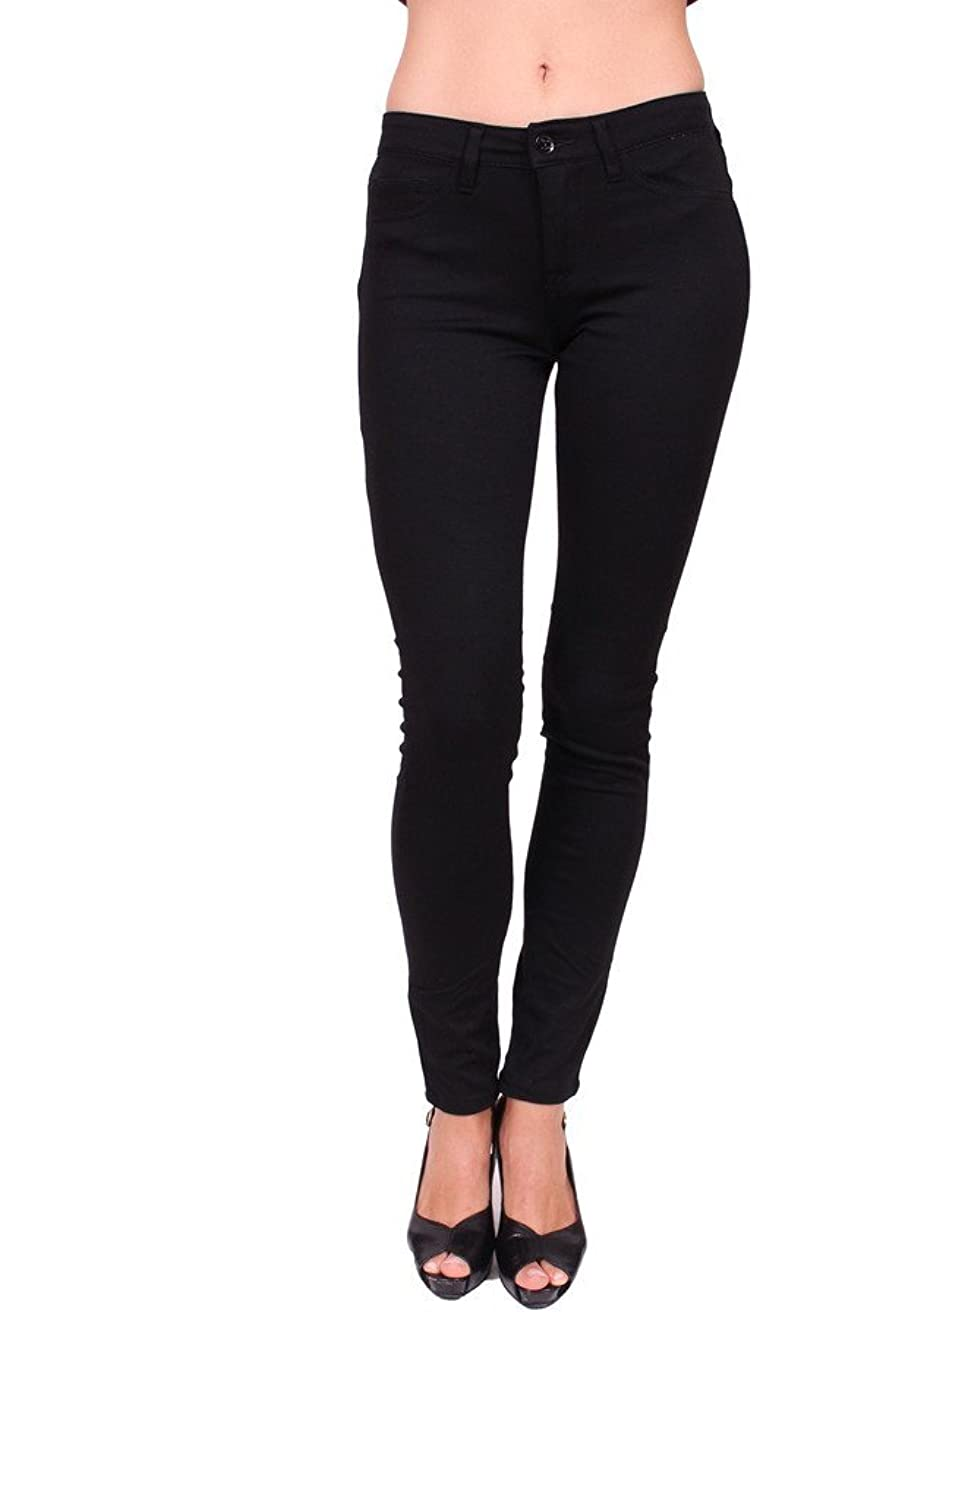 Flying Monkey Jeans Women Black Skinny Ponte Pants 70%OFF ...